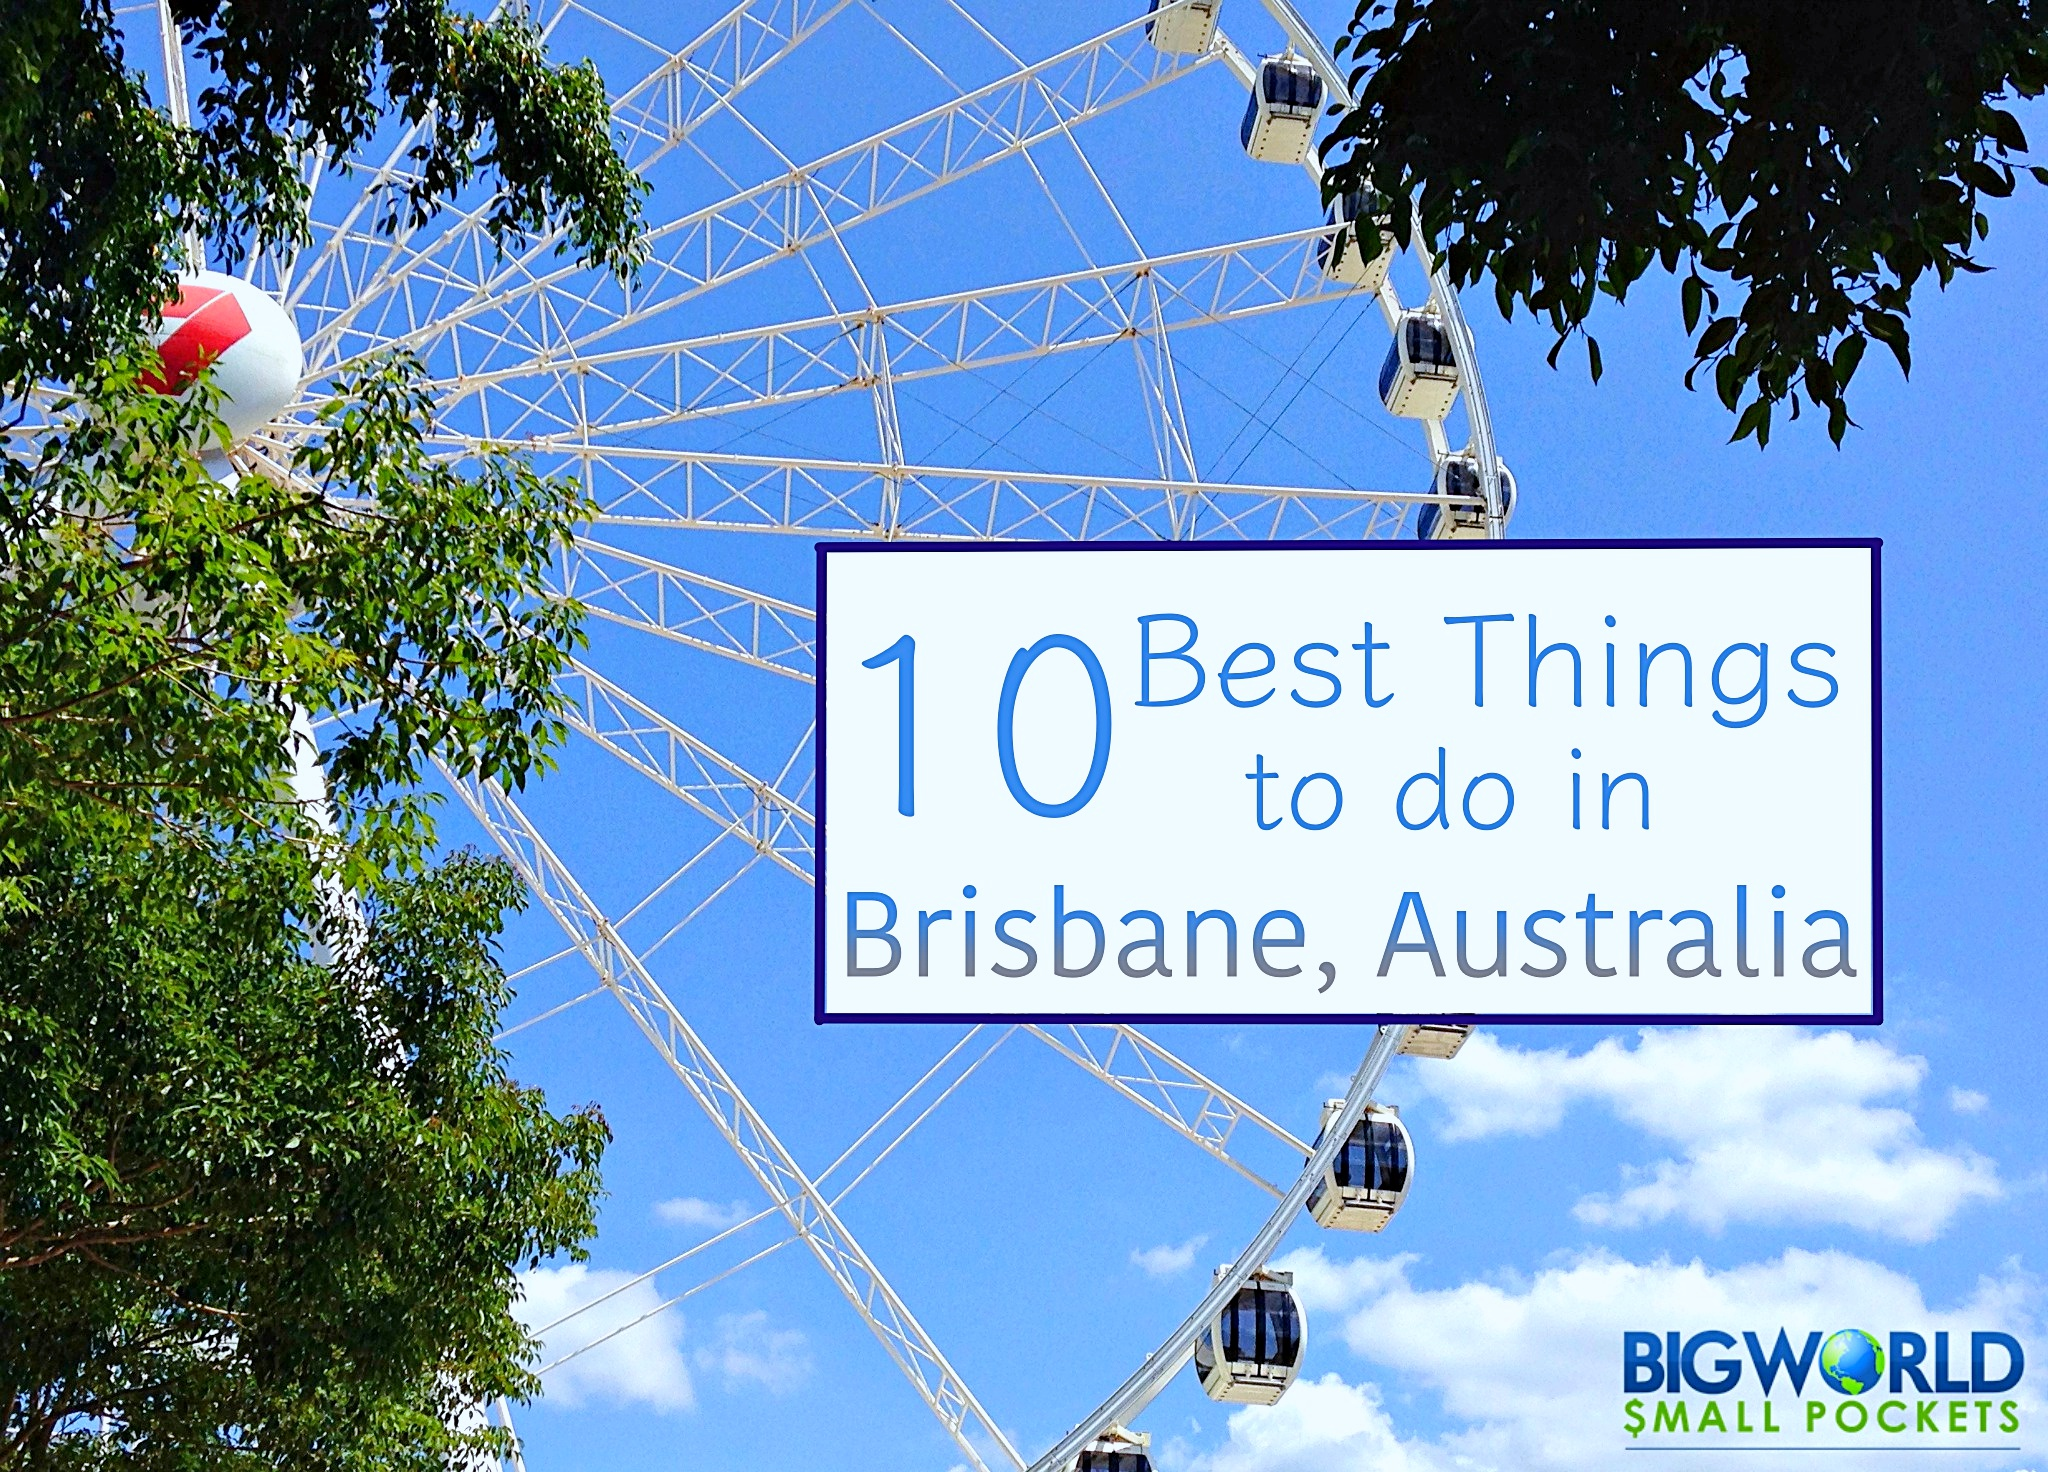 Best Things to do in Brisbane